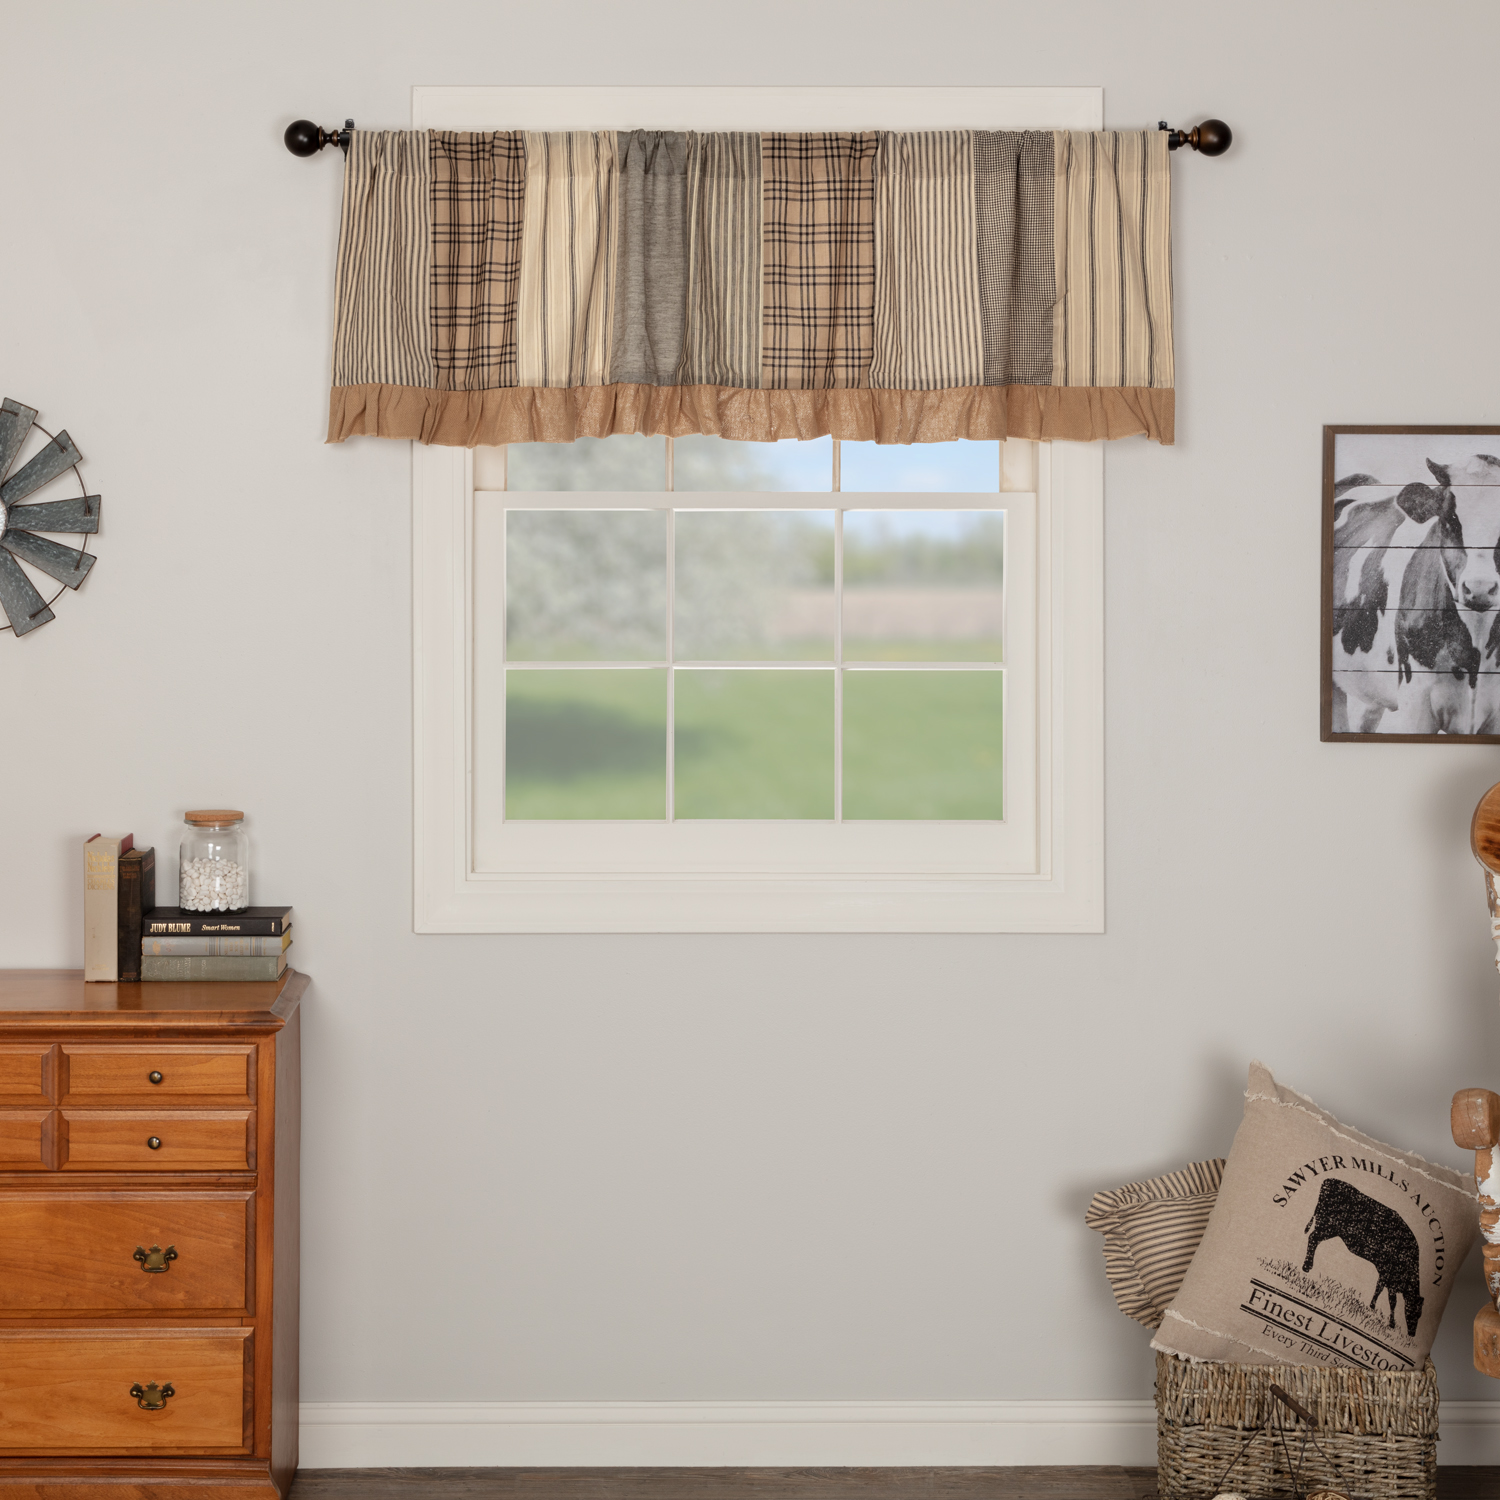 Sawyer-Mill-Charcoal-Patchwork-Valance-19x72-image-1